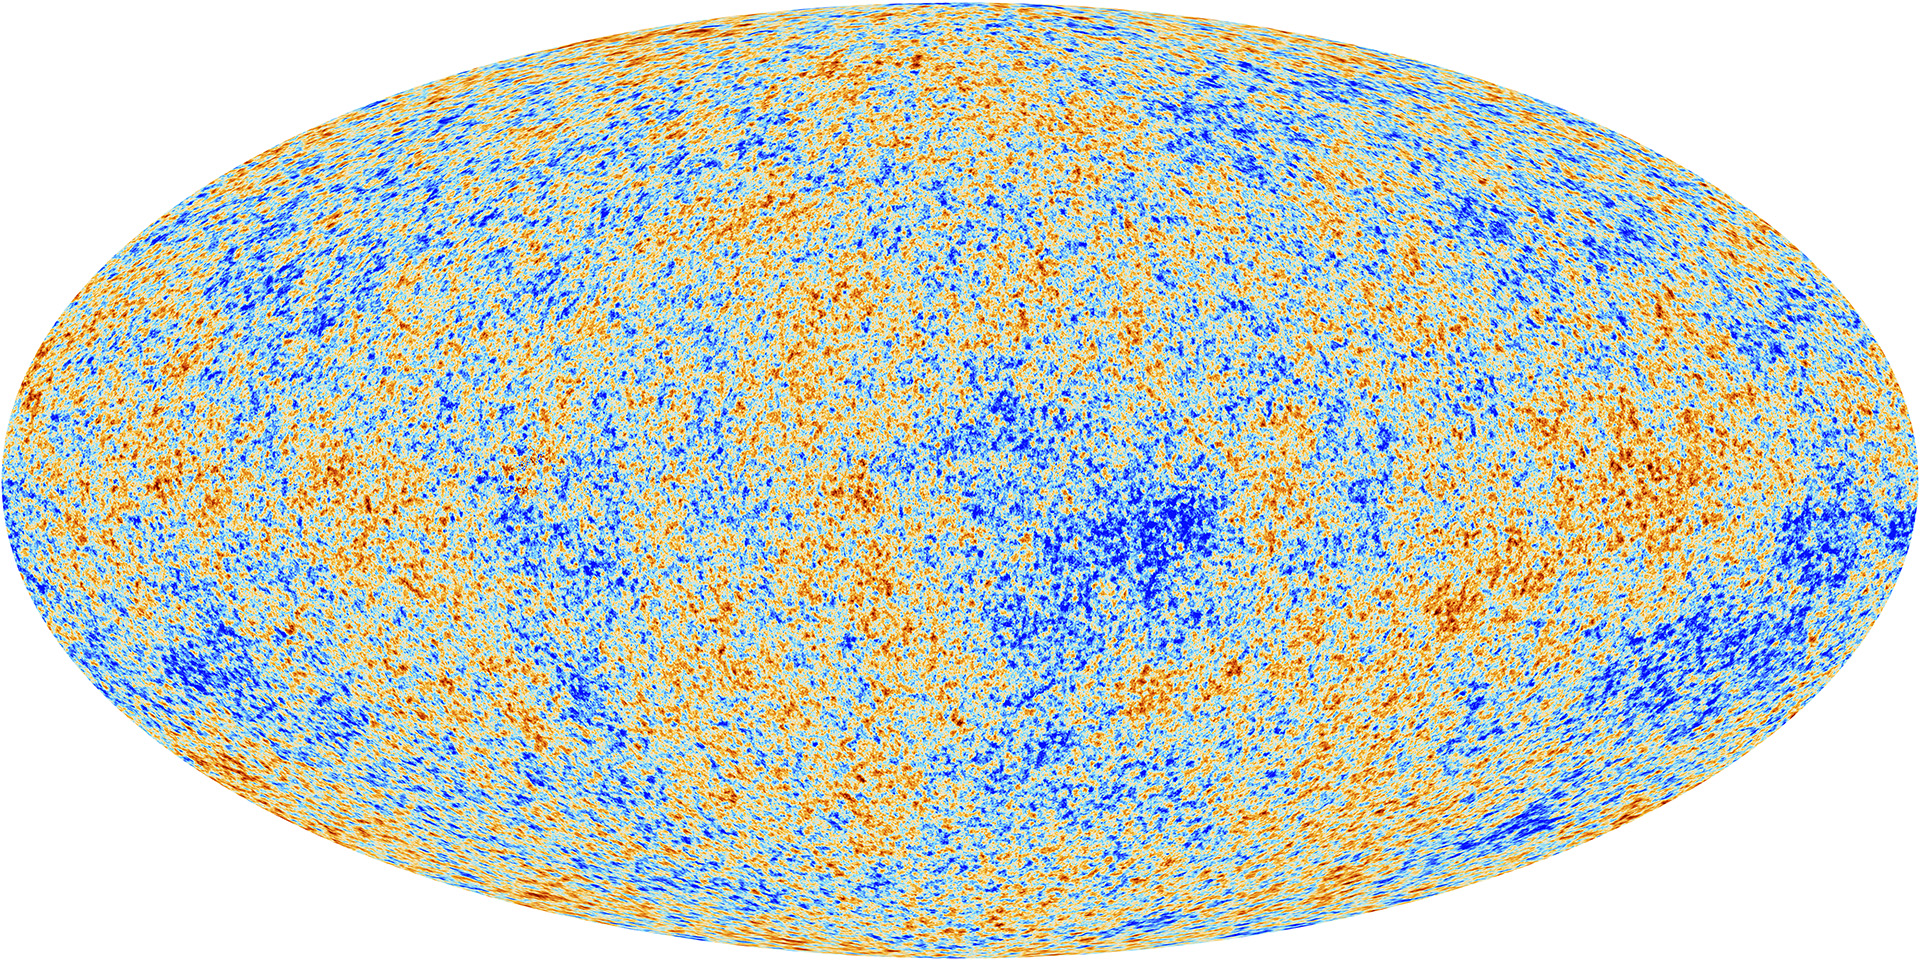 The anisotropies of the Cosmic microwave background (CMB) as observed by Planck. The CMB is a snapshot of the oldest light in our Universe, imprinted on the sky when the Universe was just 380,000 years old. Image credit: ESA/Planck Collaboration, CC BY SA IGO